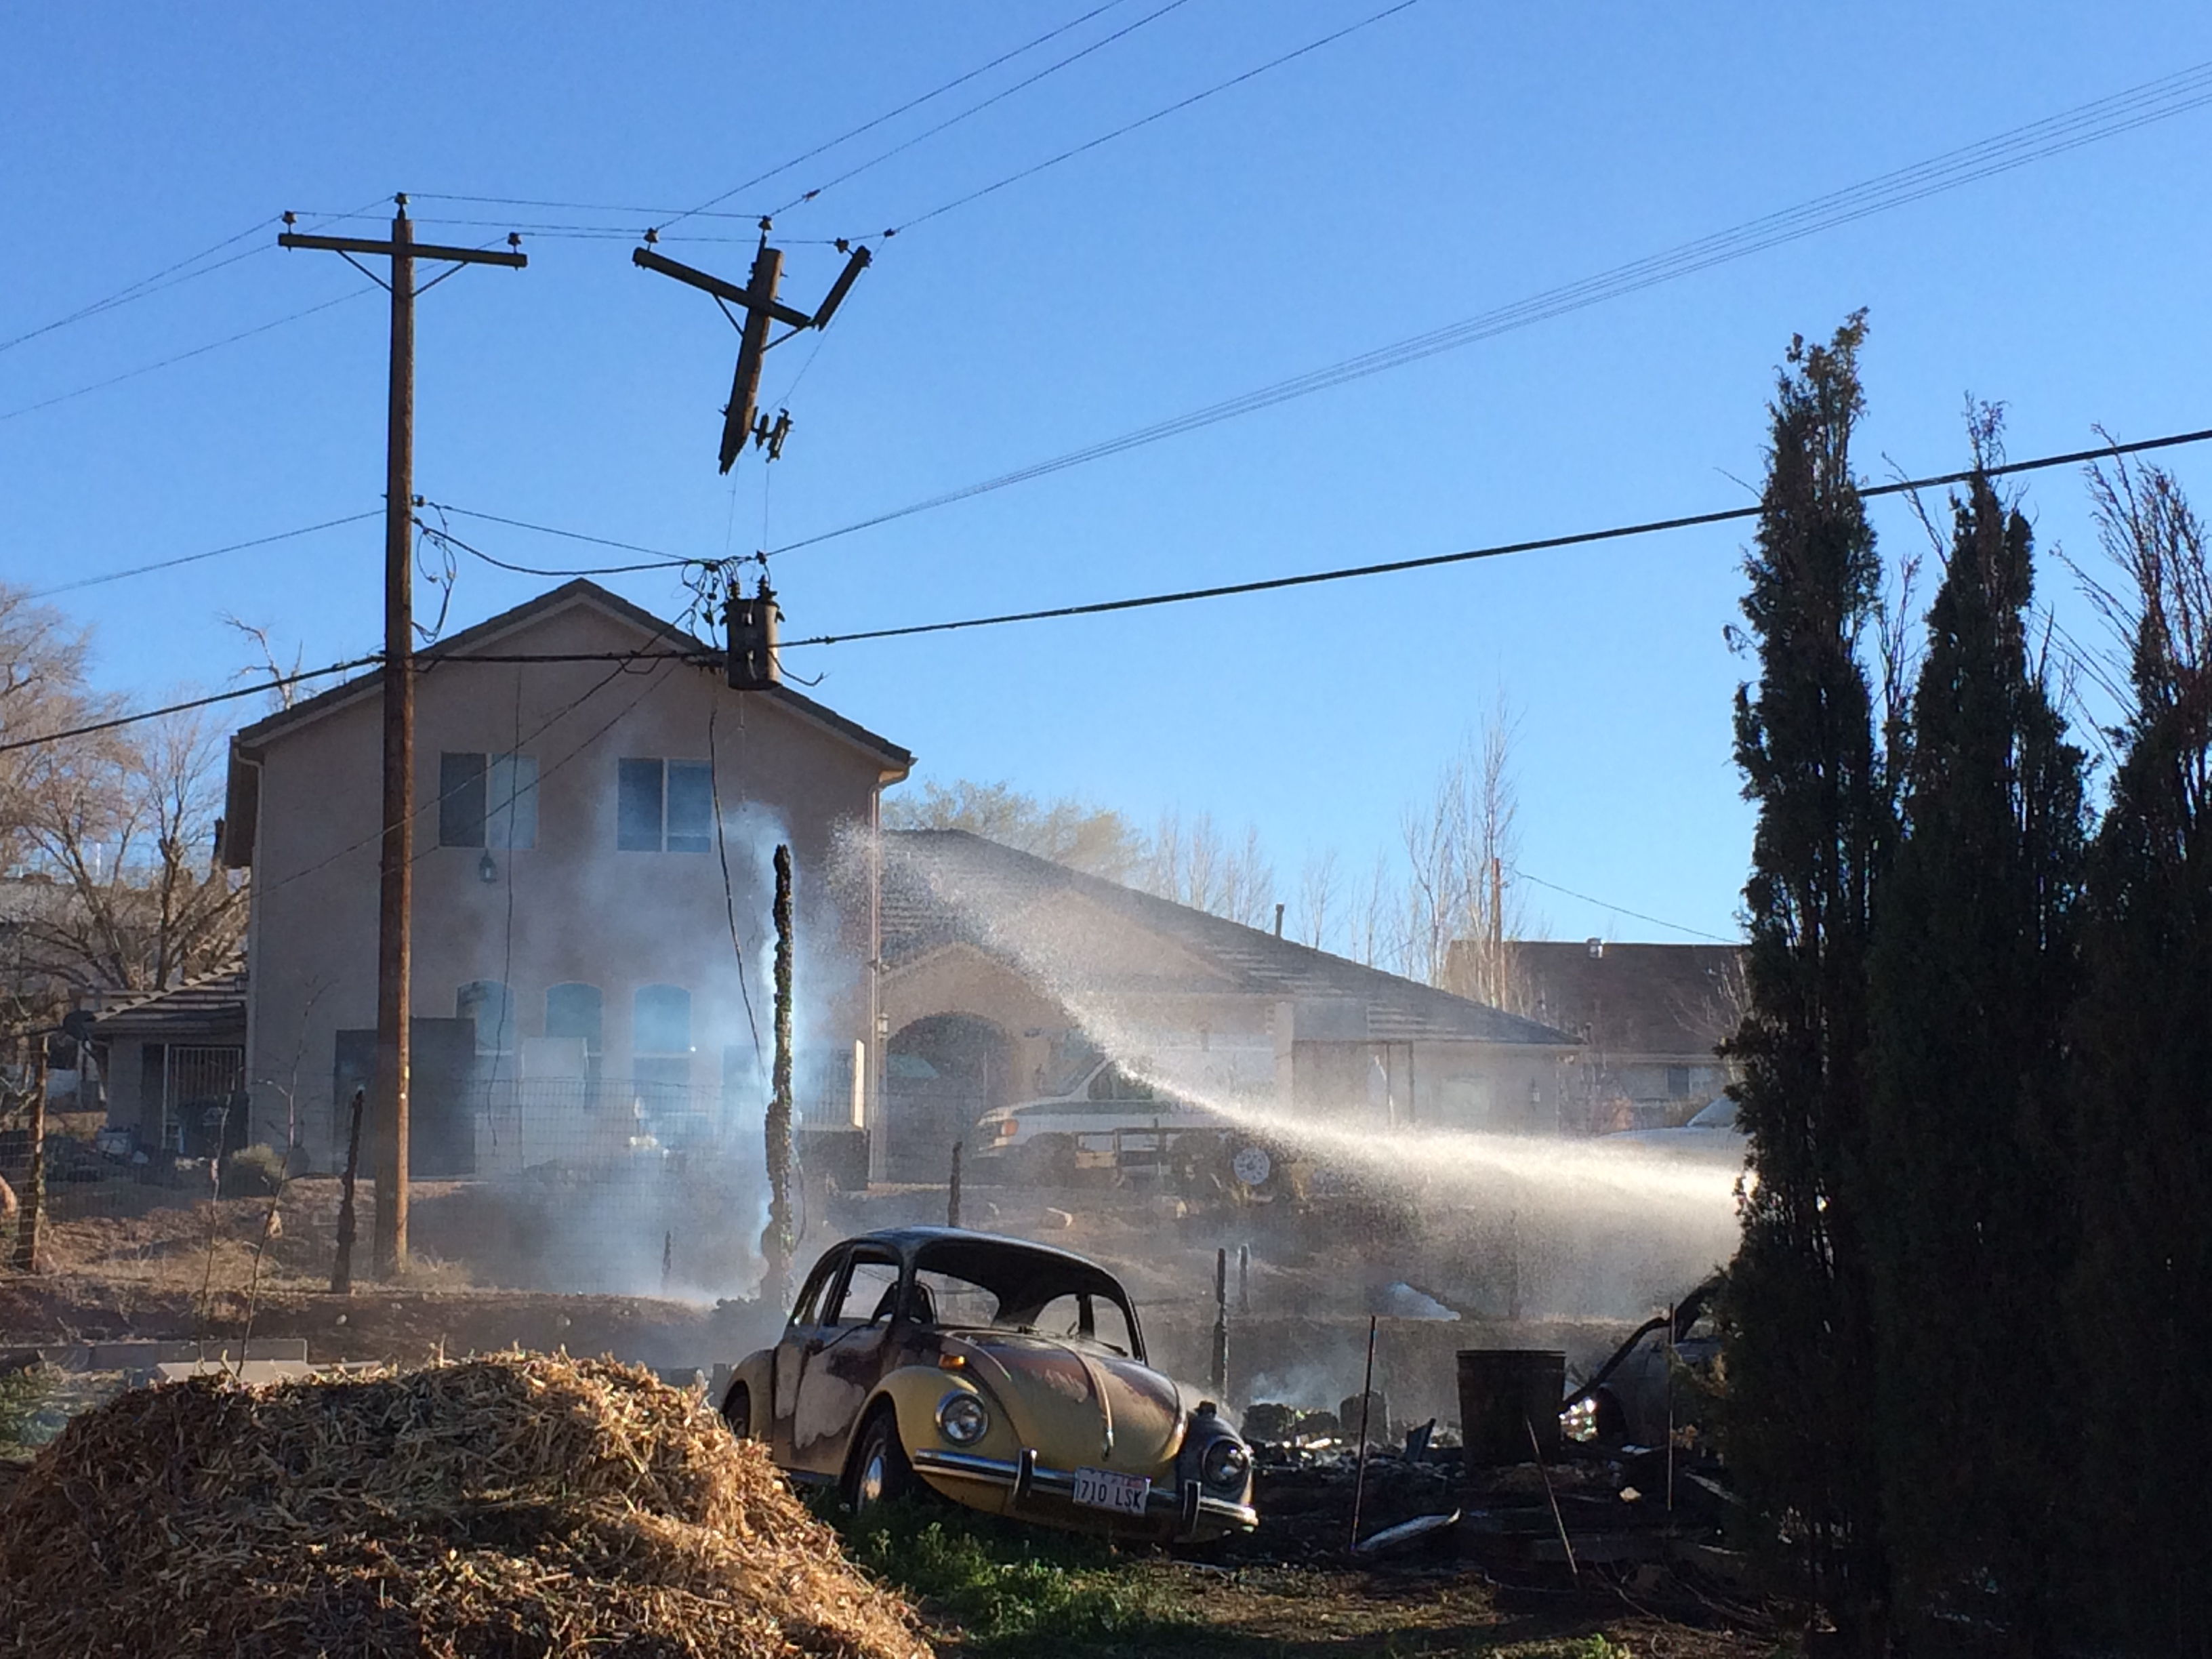 A home, located at 341 W. 600 North, and a power pole  went up in flames, Laverkin, Utah, Feb. 24, 2015 | Photo by Kimberly Scott, St. George News